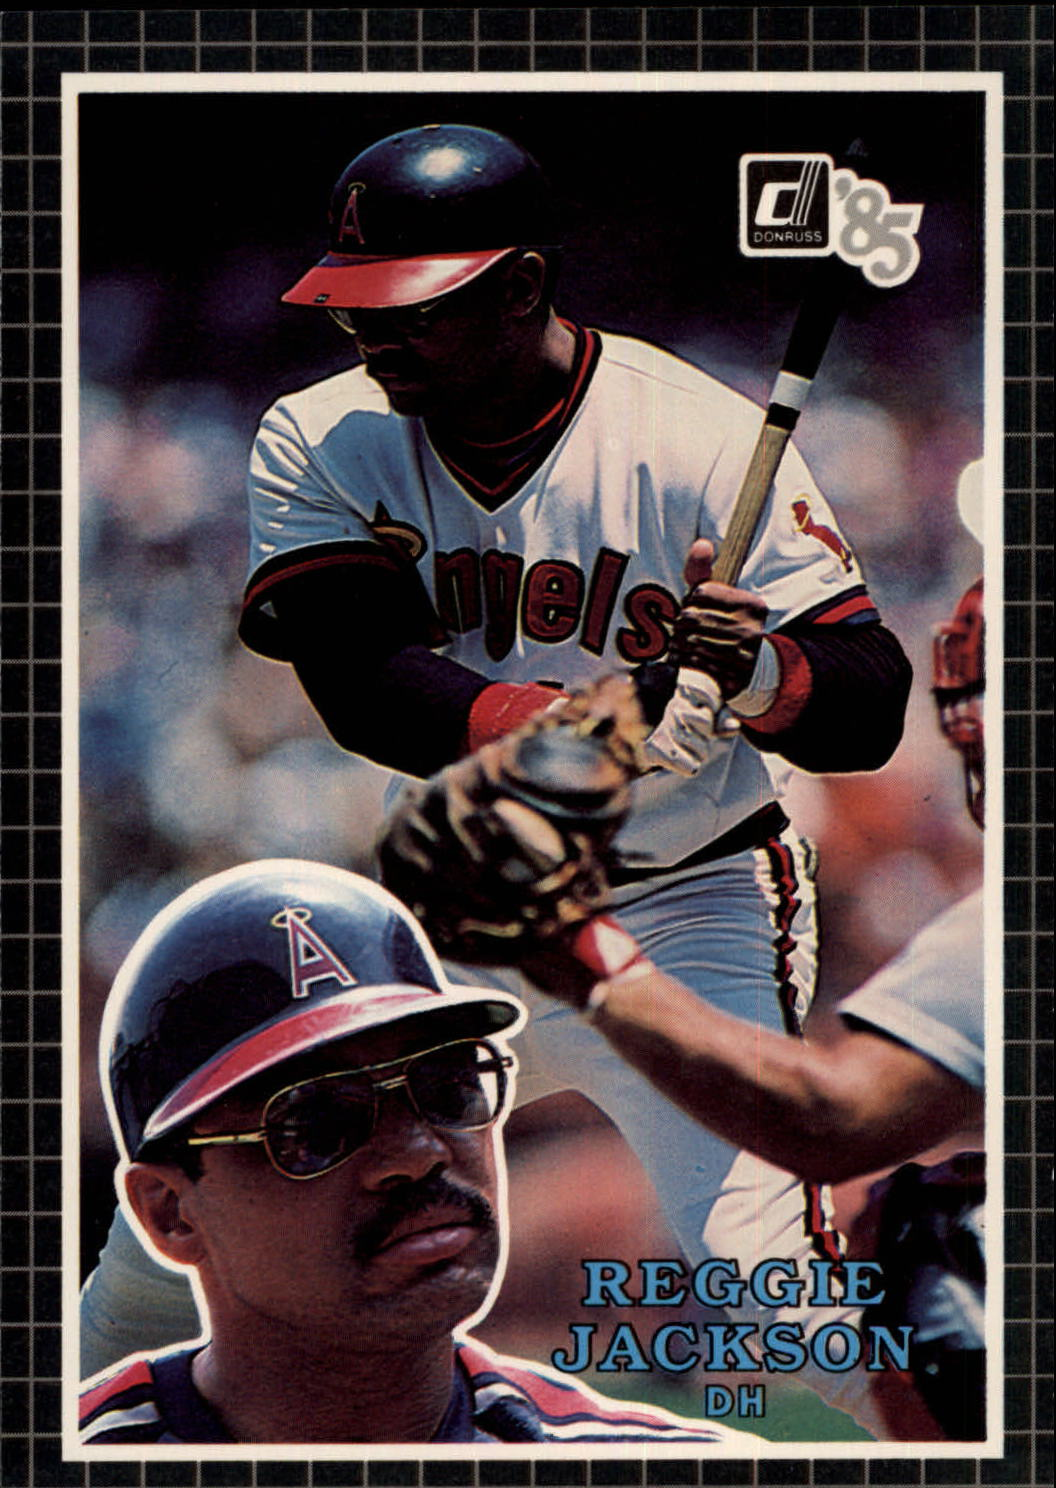 1985 Donruss Action All-Stars #39 Reggie Jackson